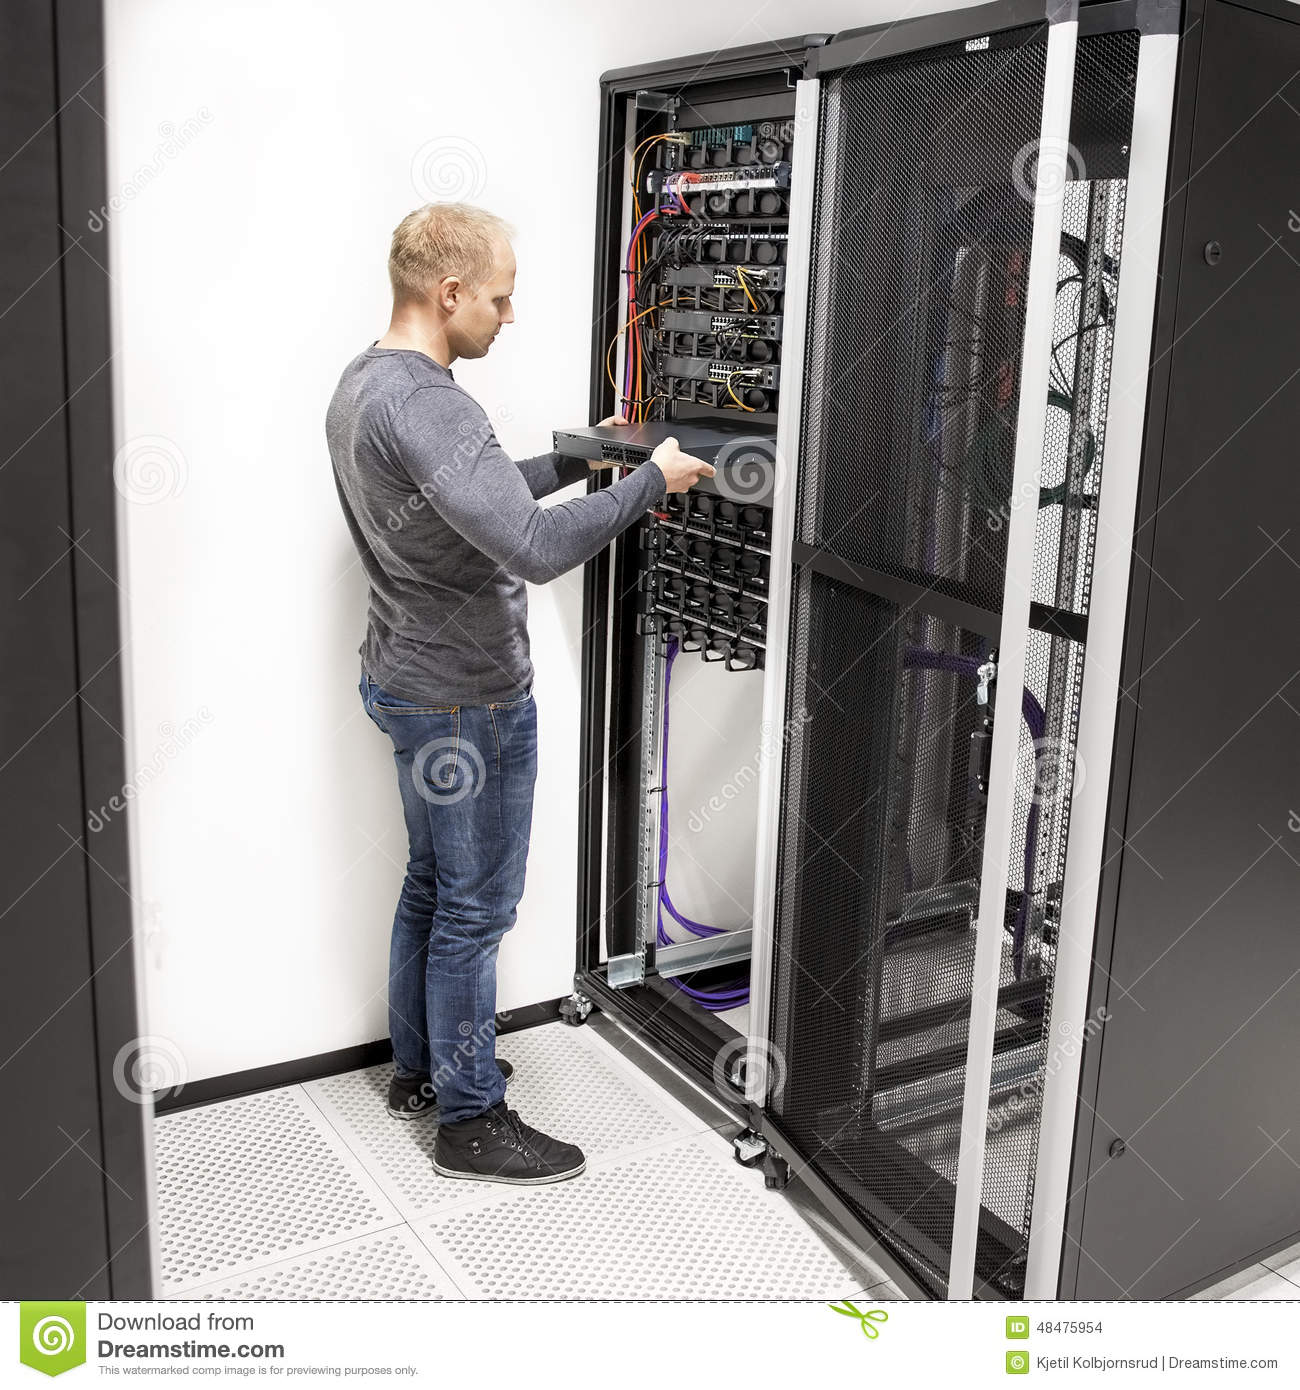 IT Technician Install Network Rack In Datacenter Stock Photo